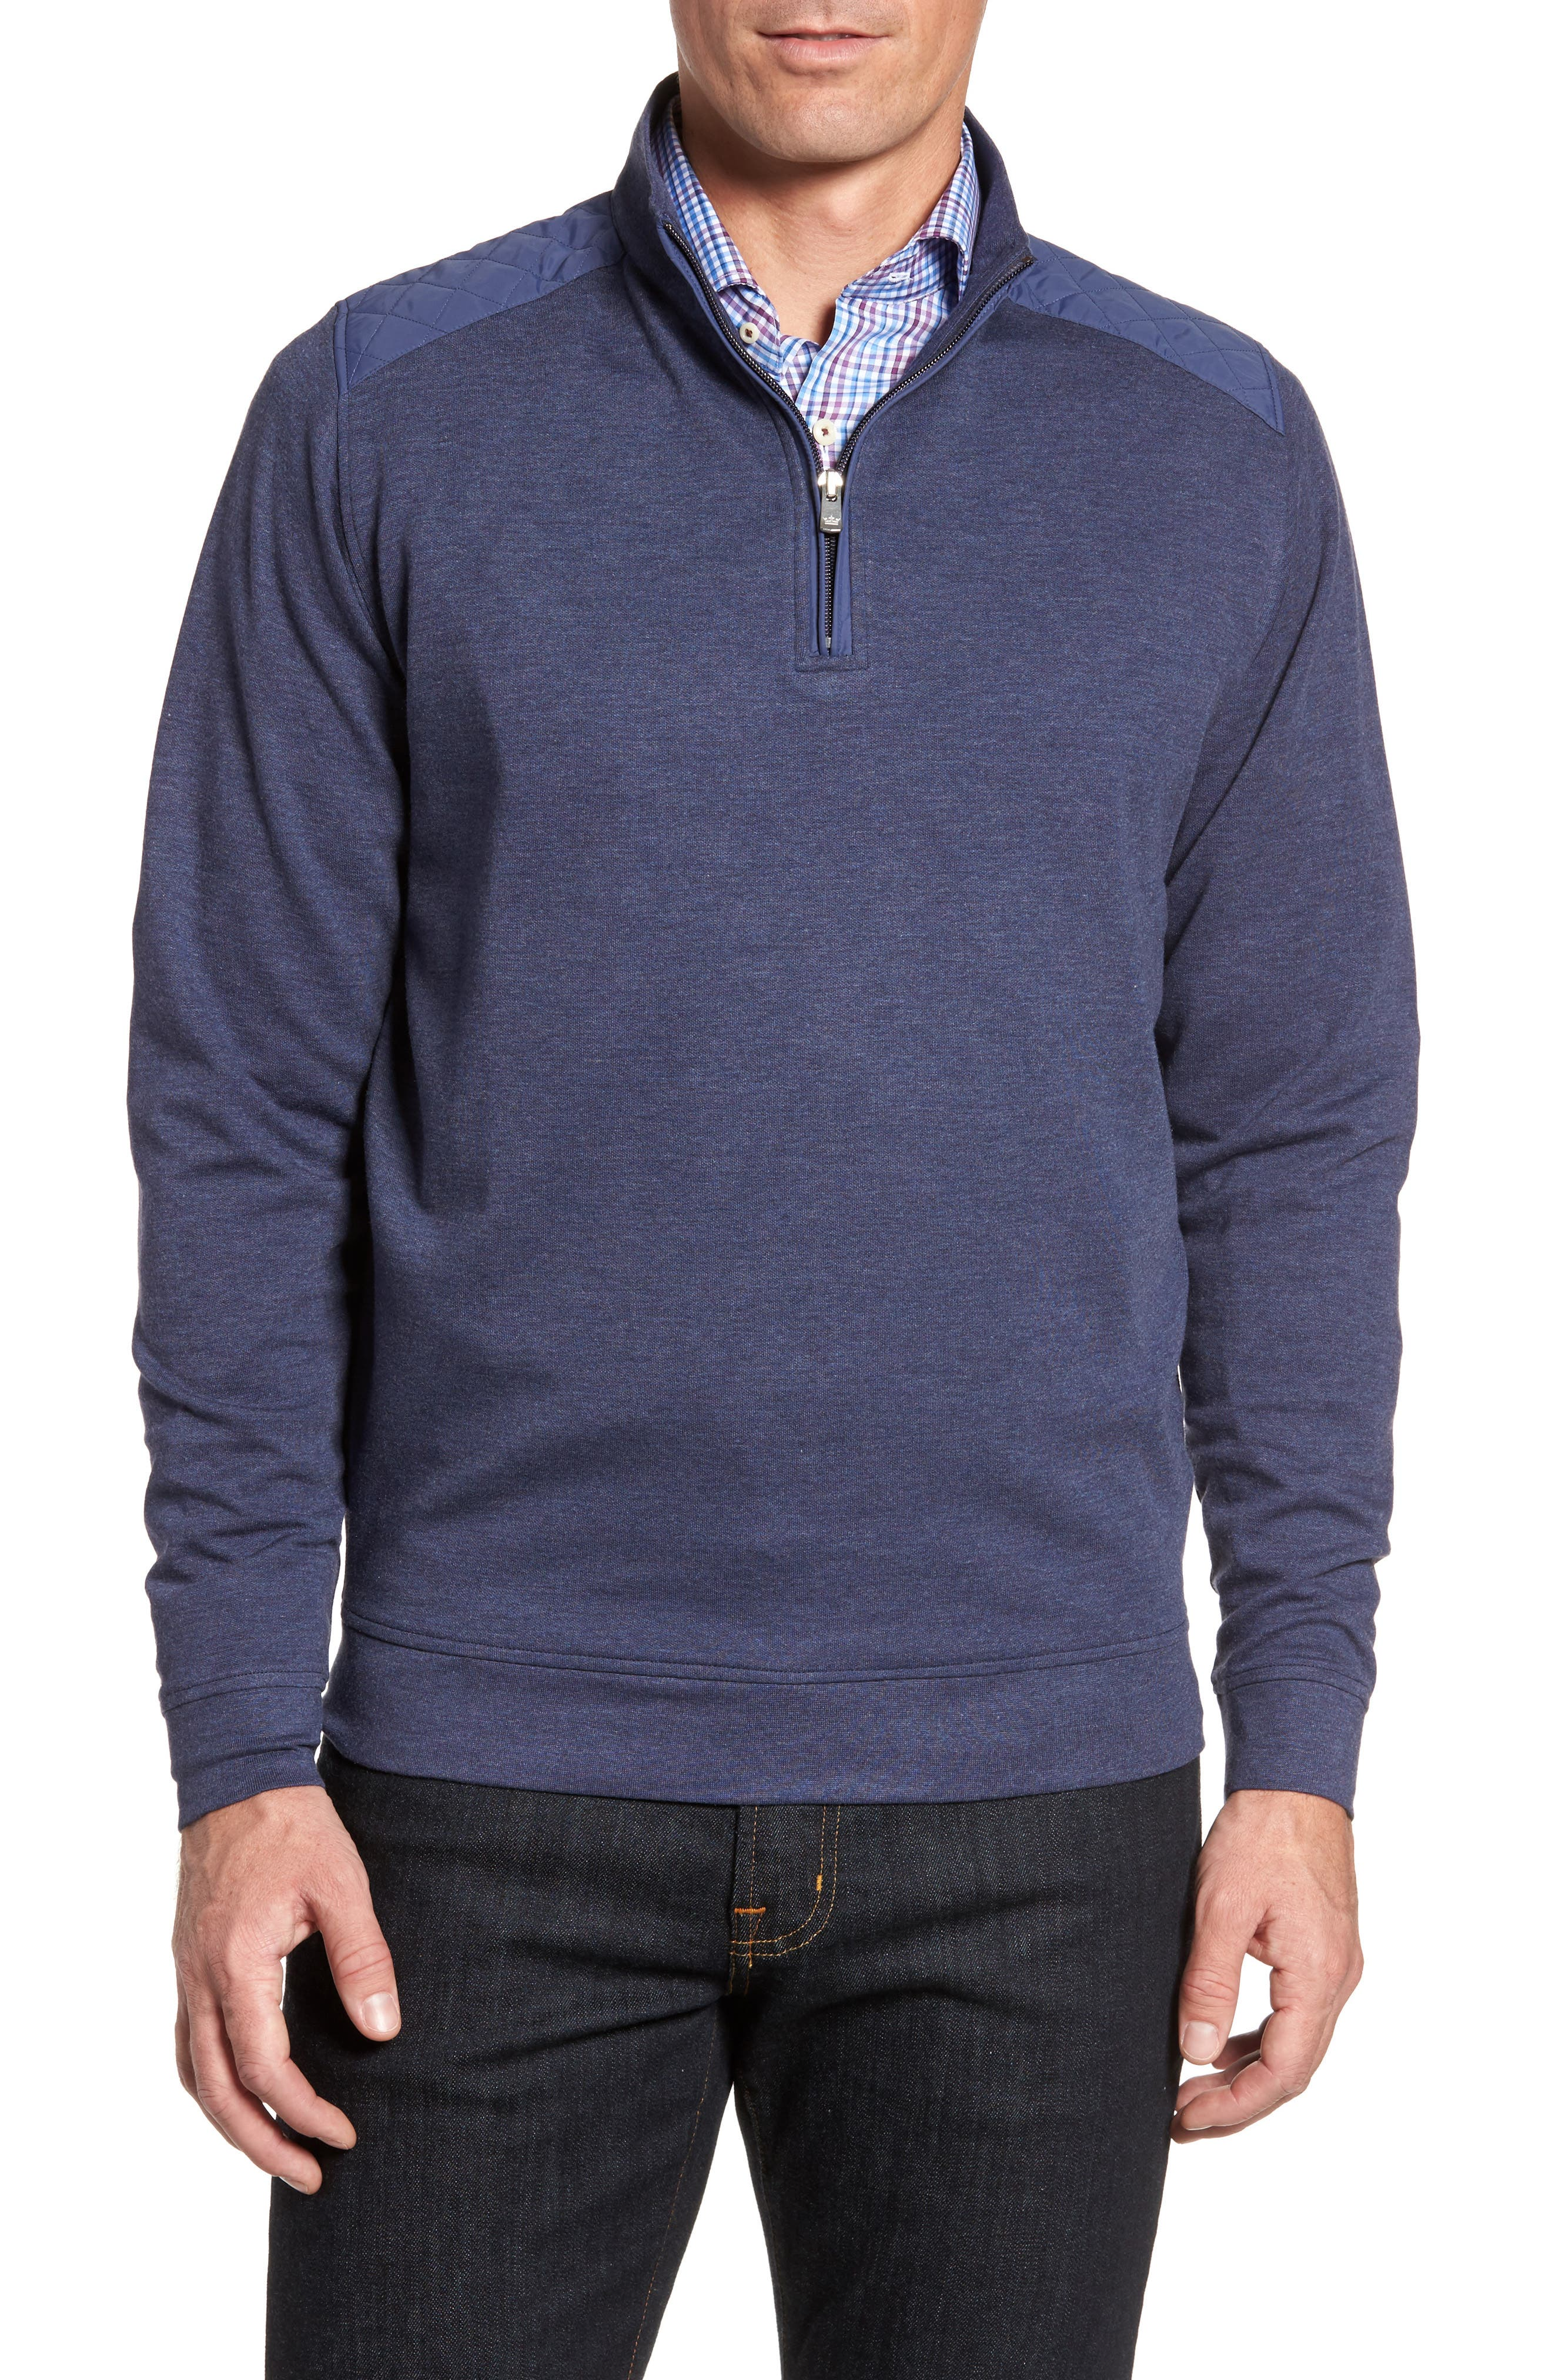 Boating Quarter Zip Pullover,                         Main,                         color, 400